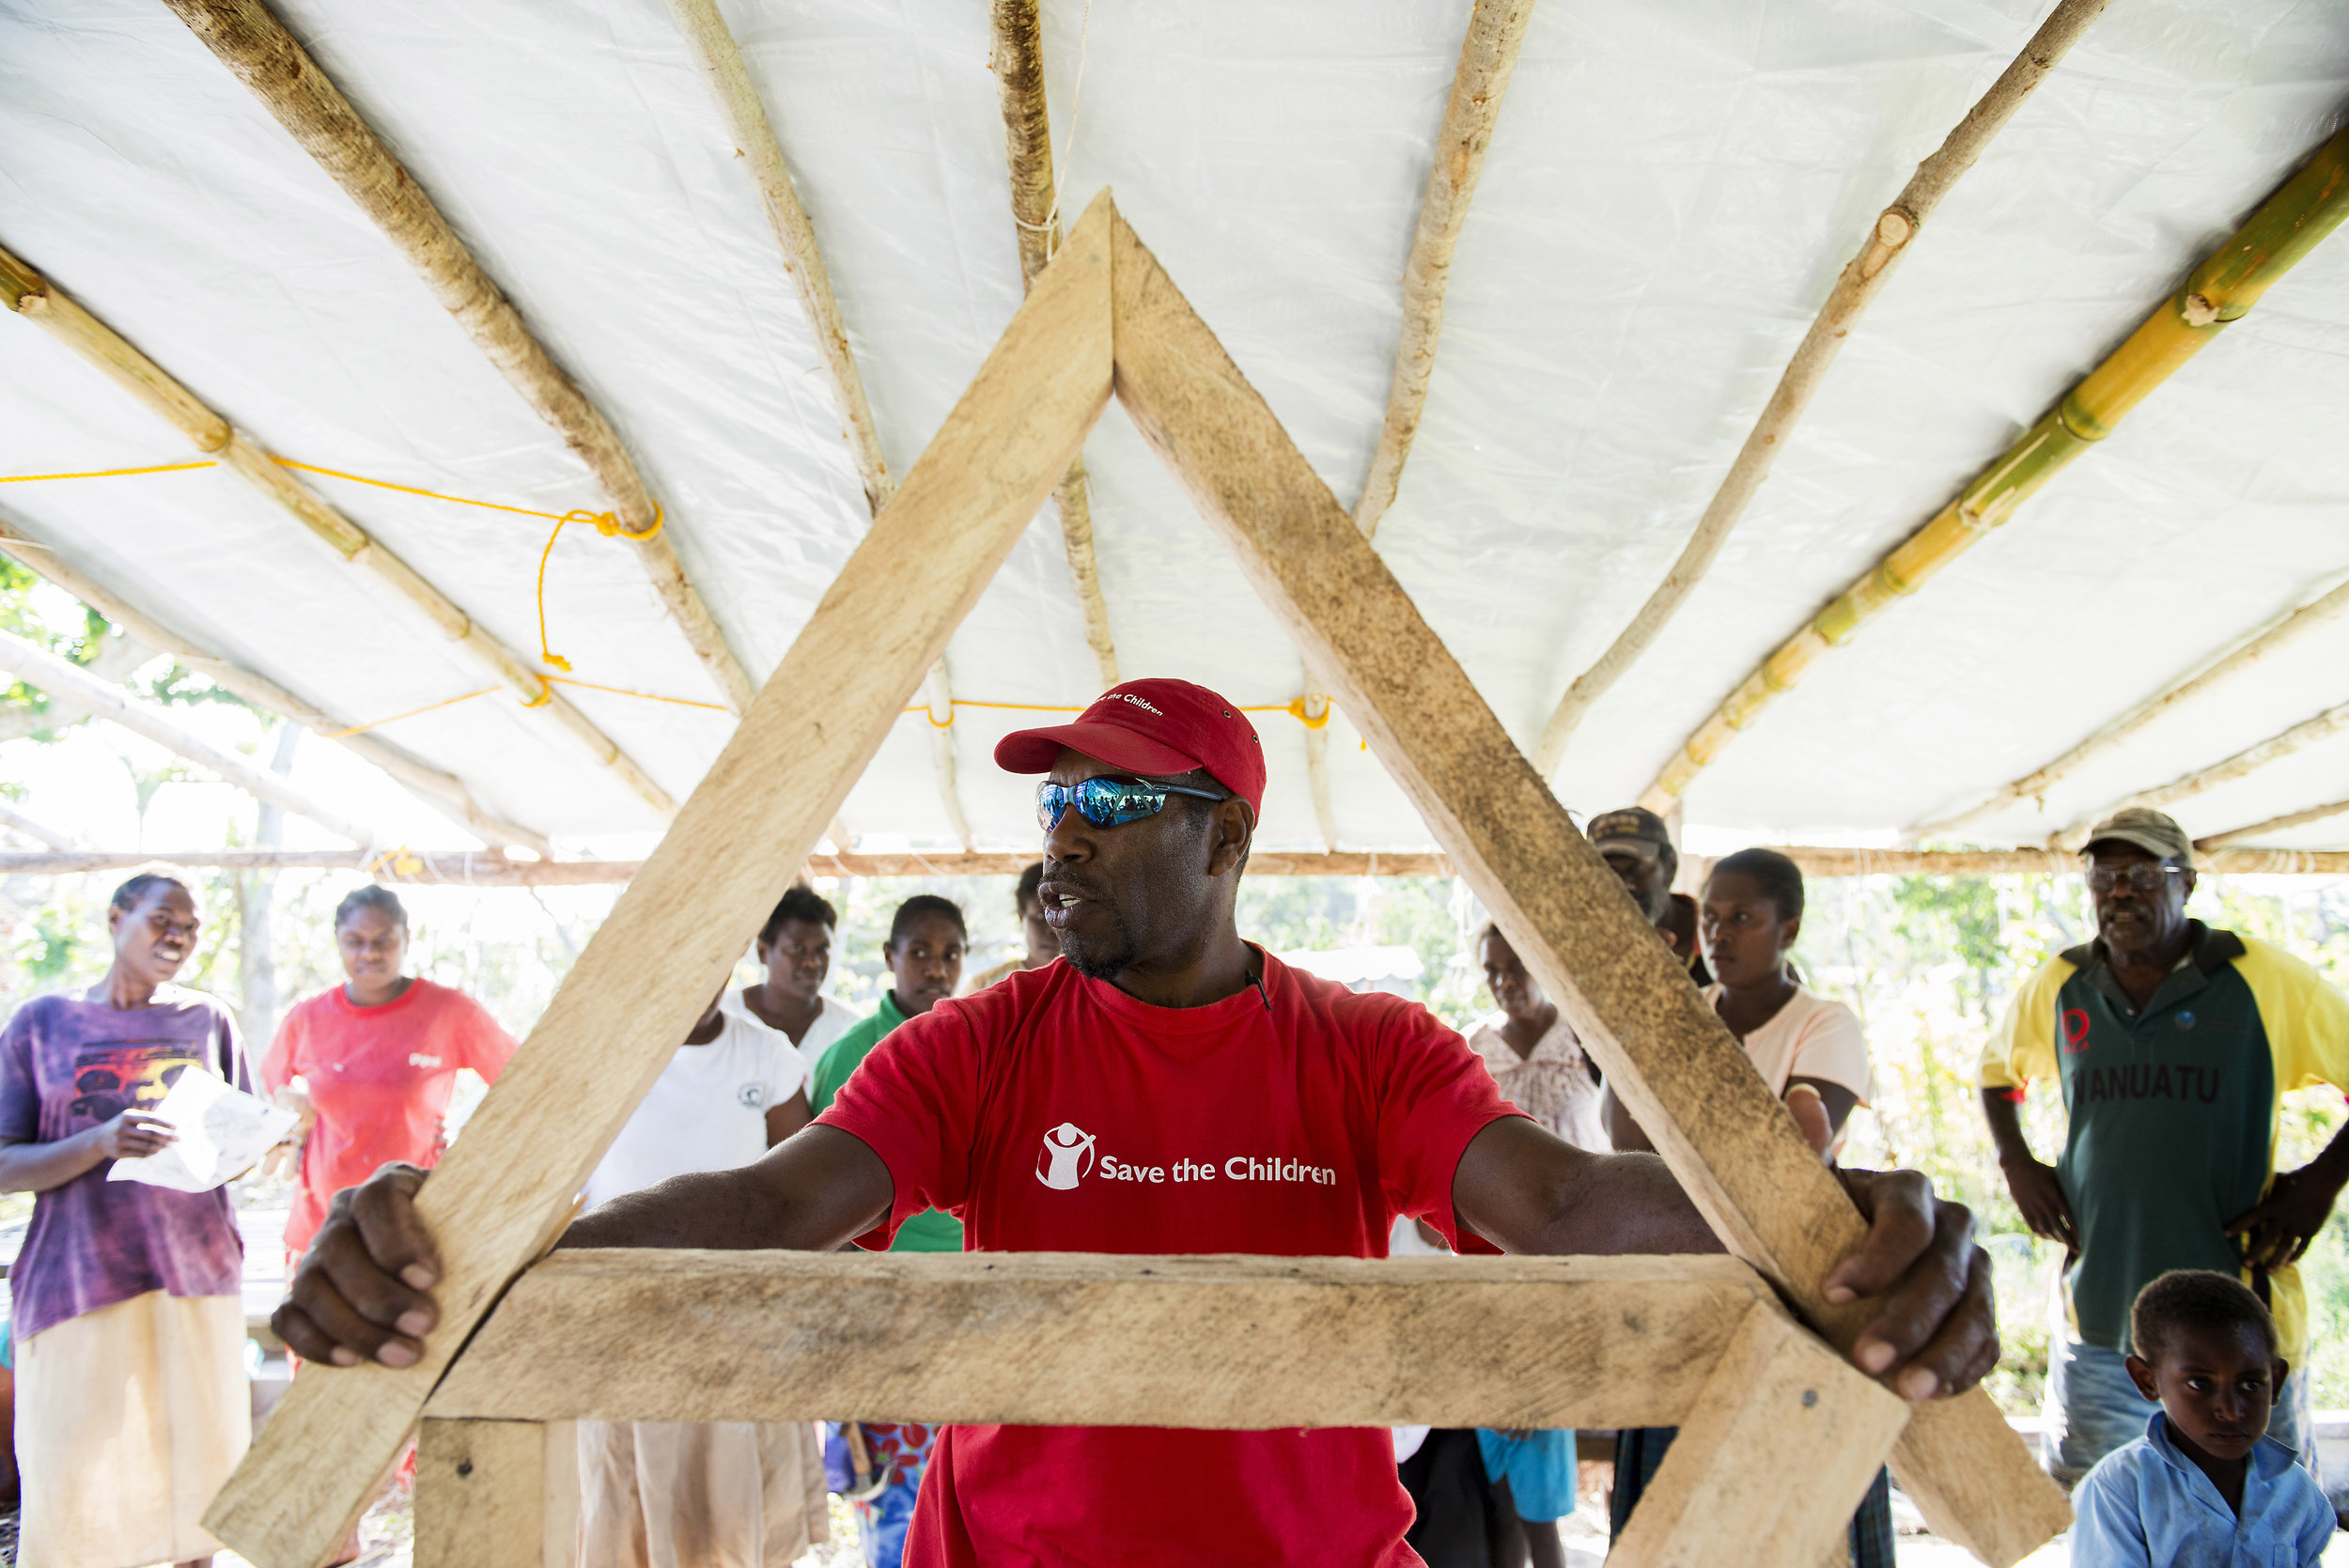 Shelter workshop, 3 months on from Cyclone Pam. Tongoa, Vanuatu. 2015.